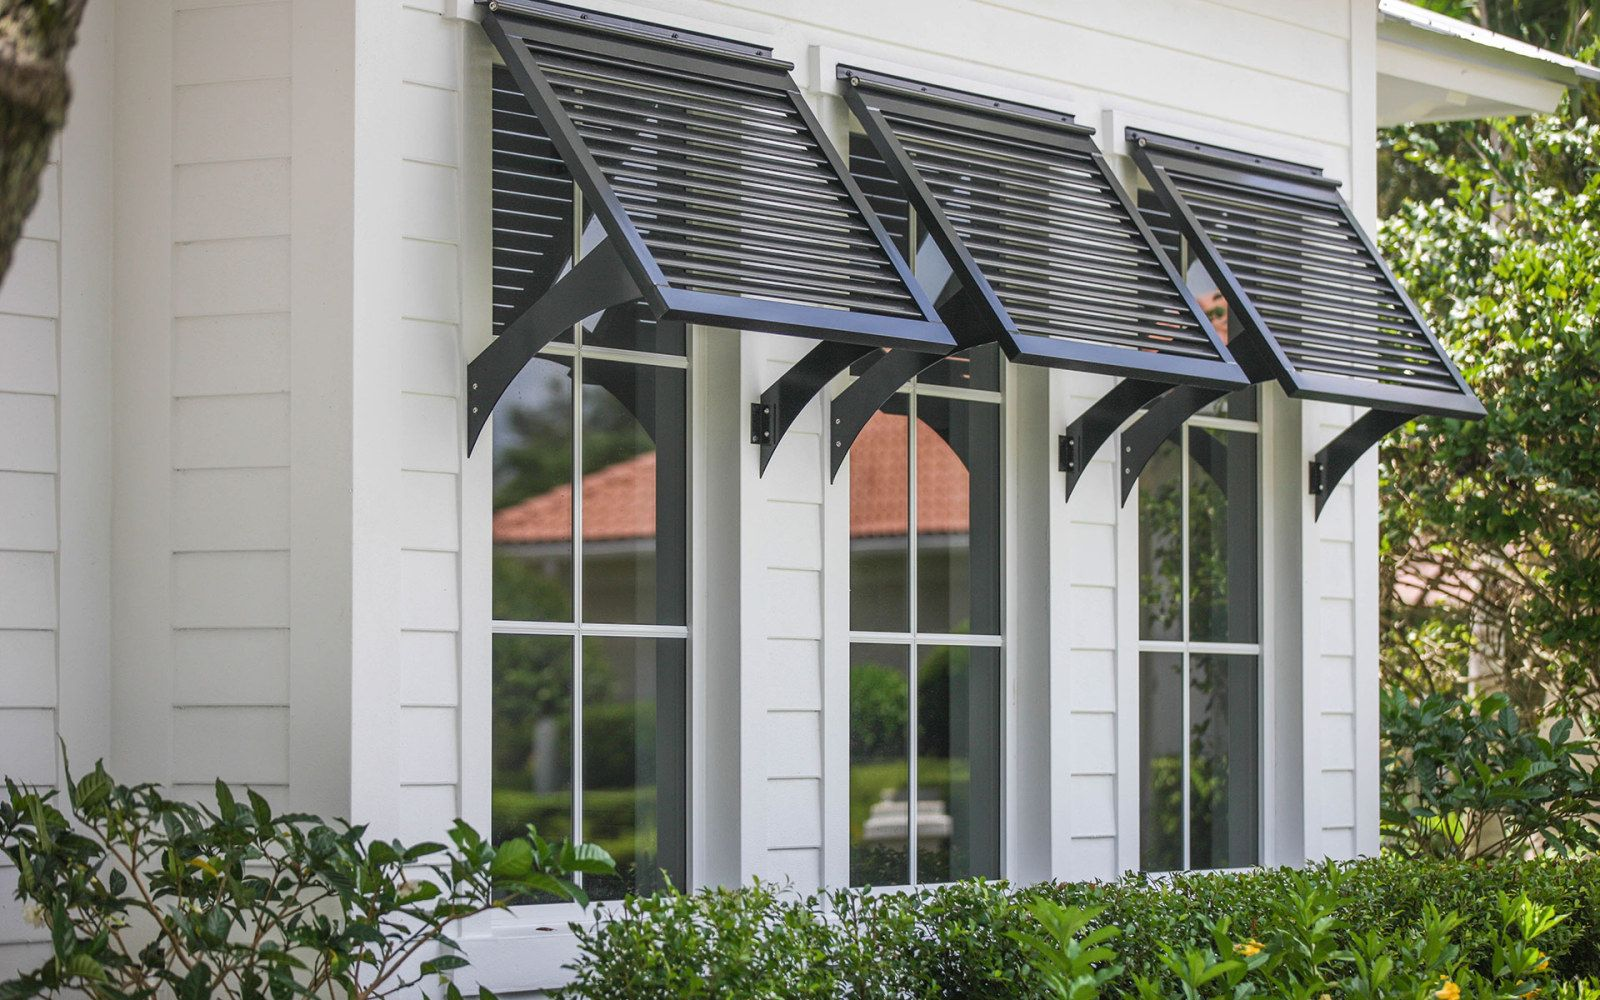 Benefits of Adding Shutters to your Home